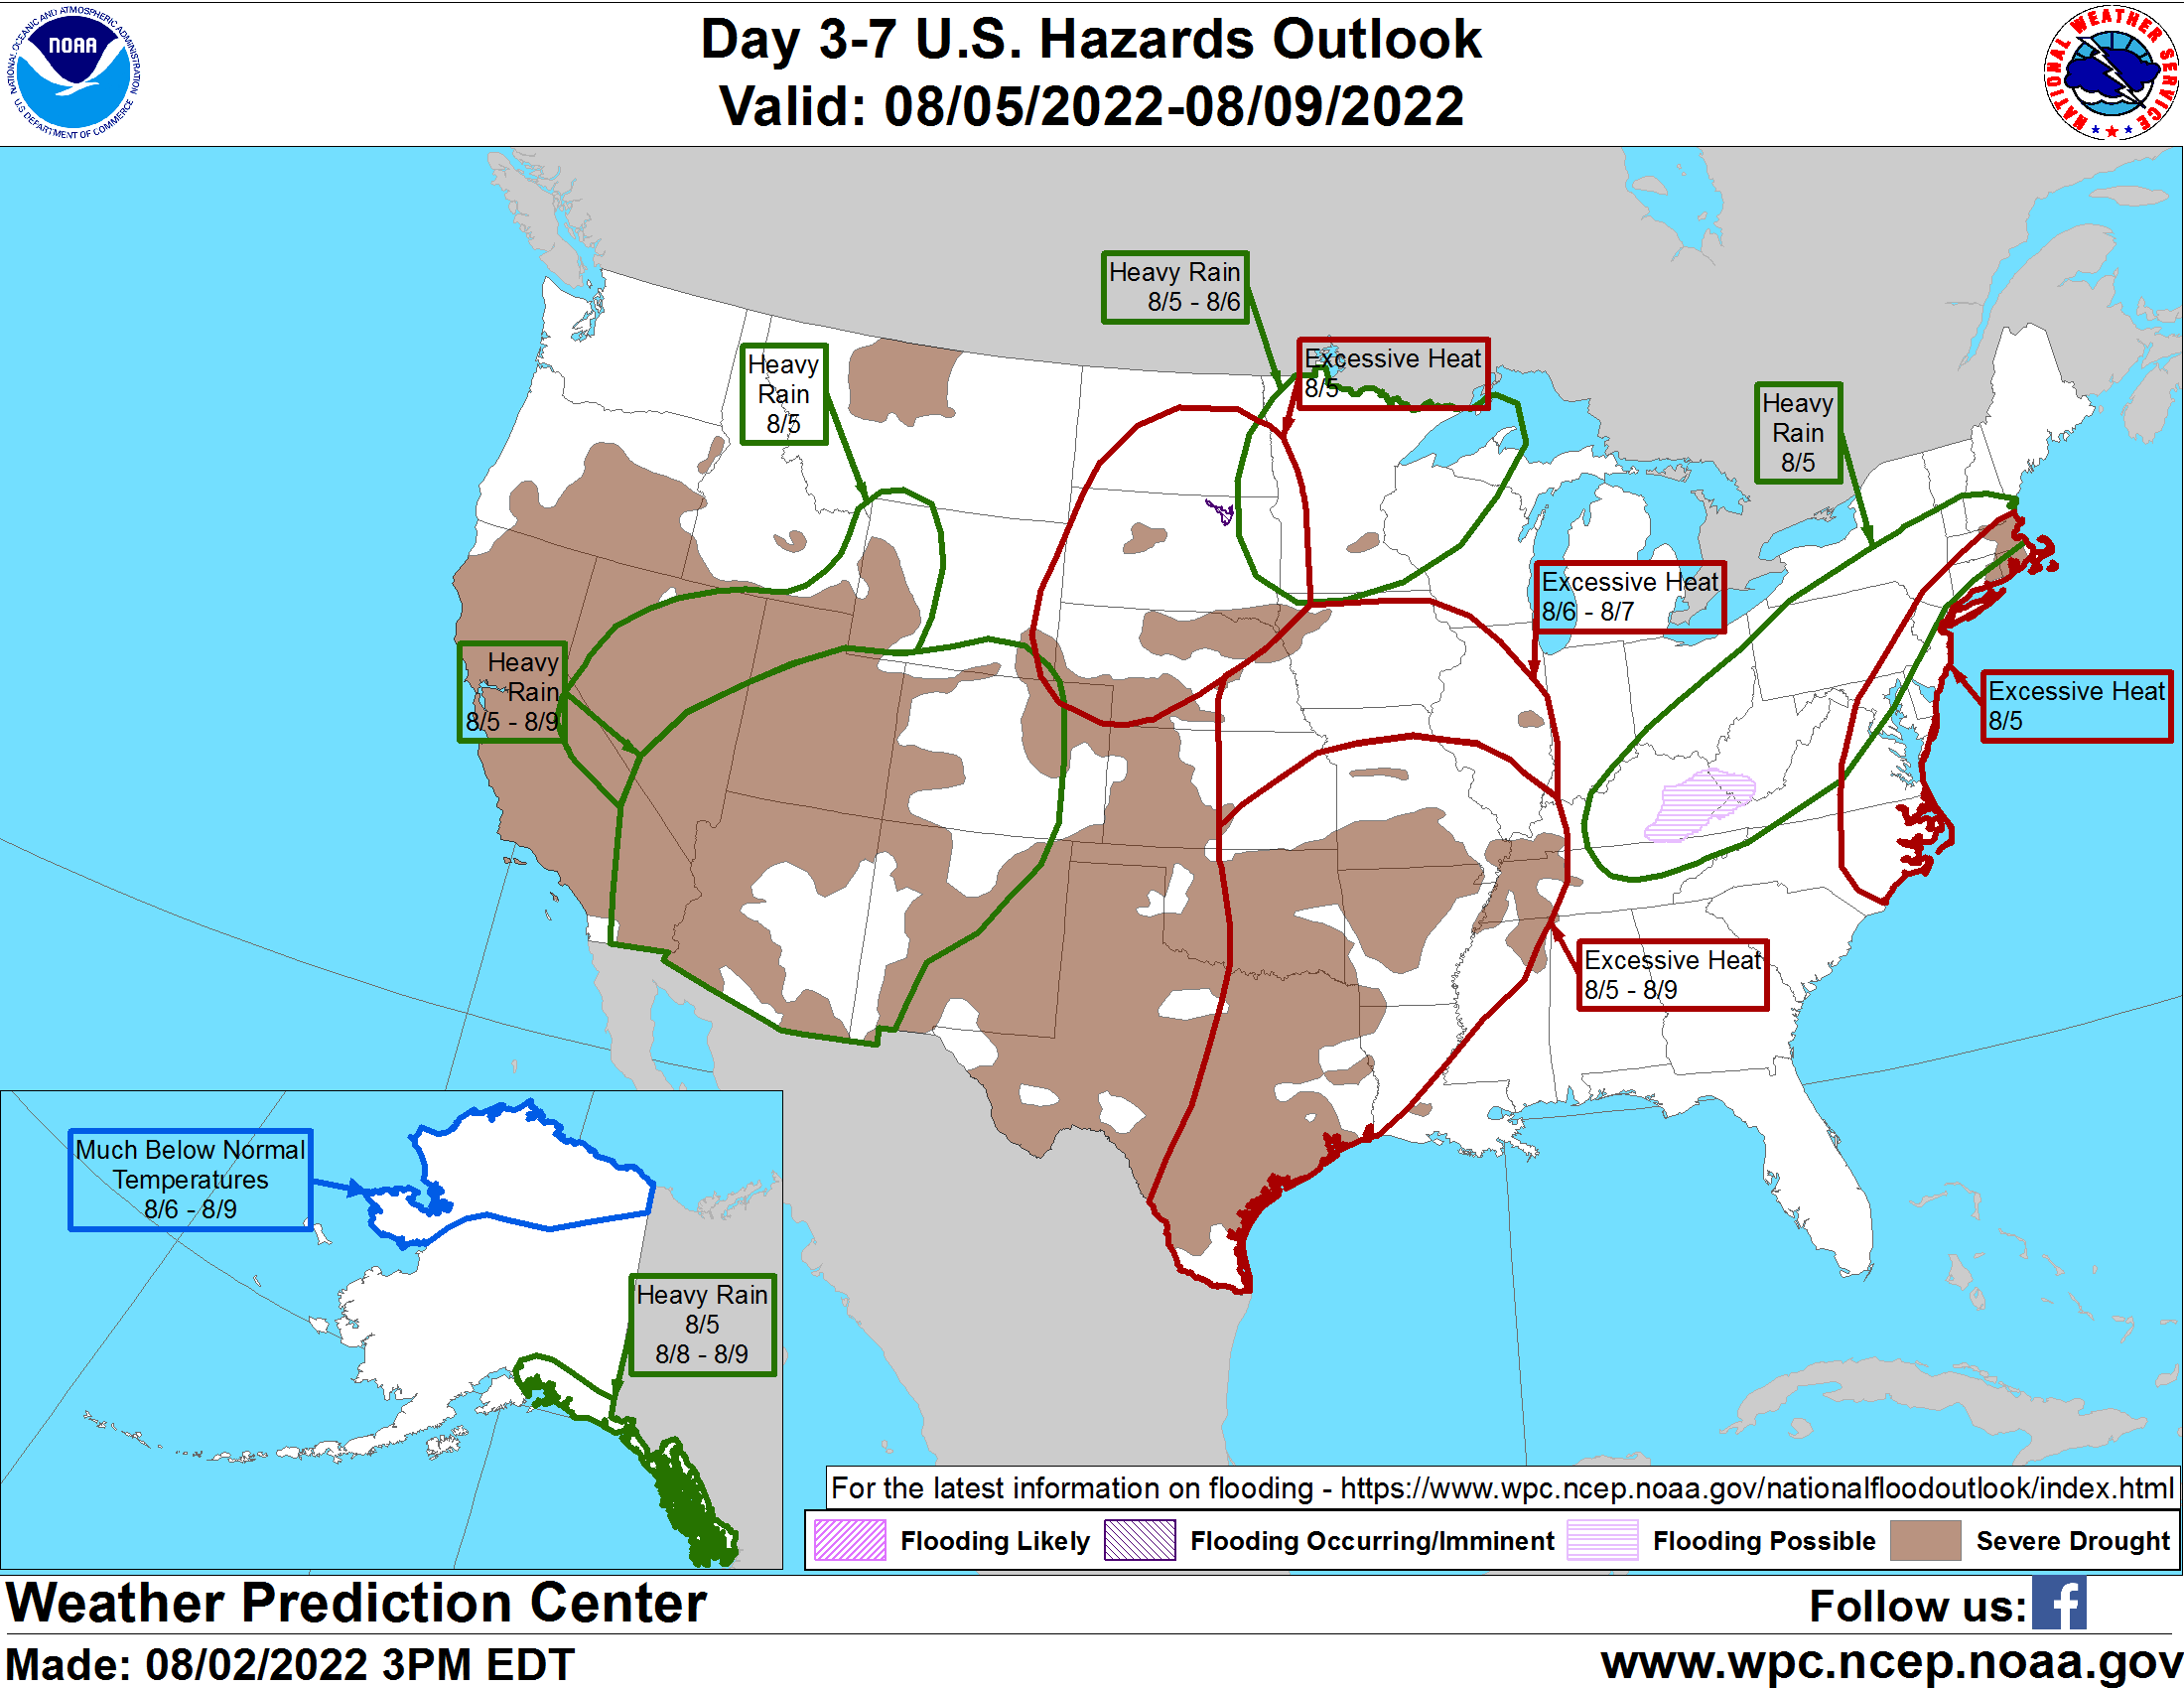 United States 3-7 Day Hazards Outlook